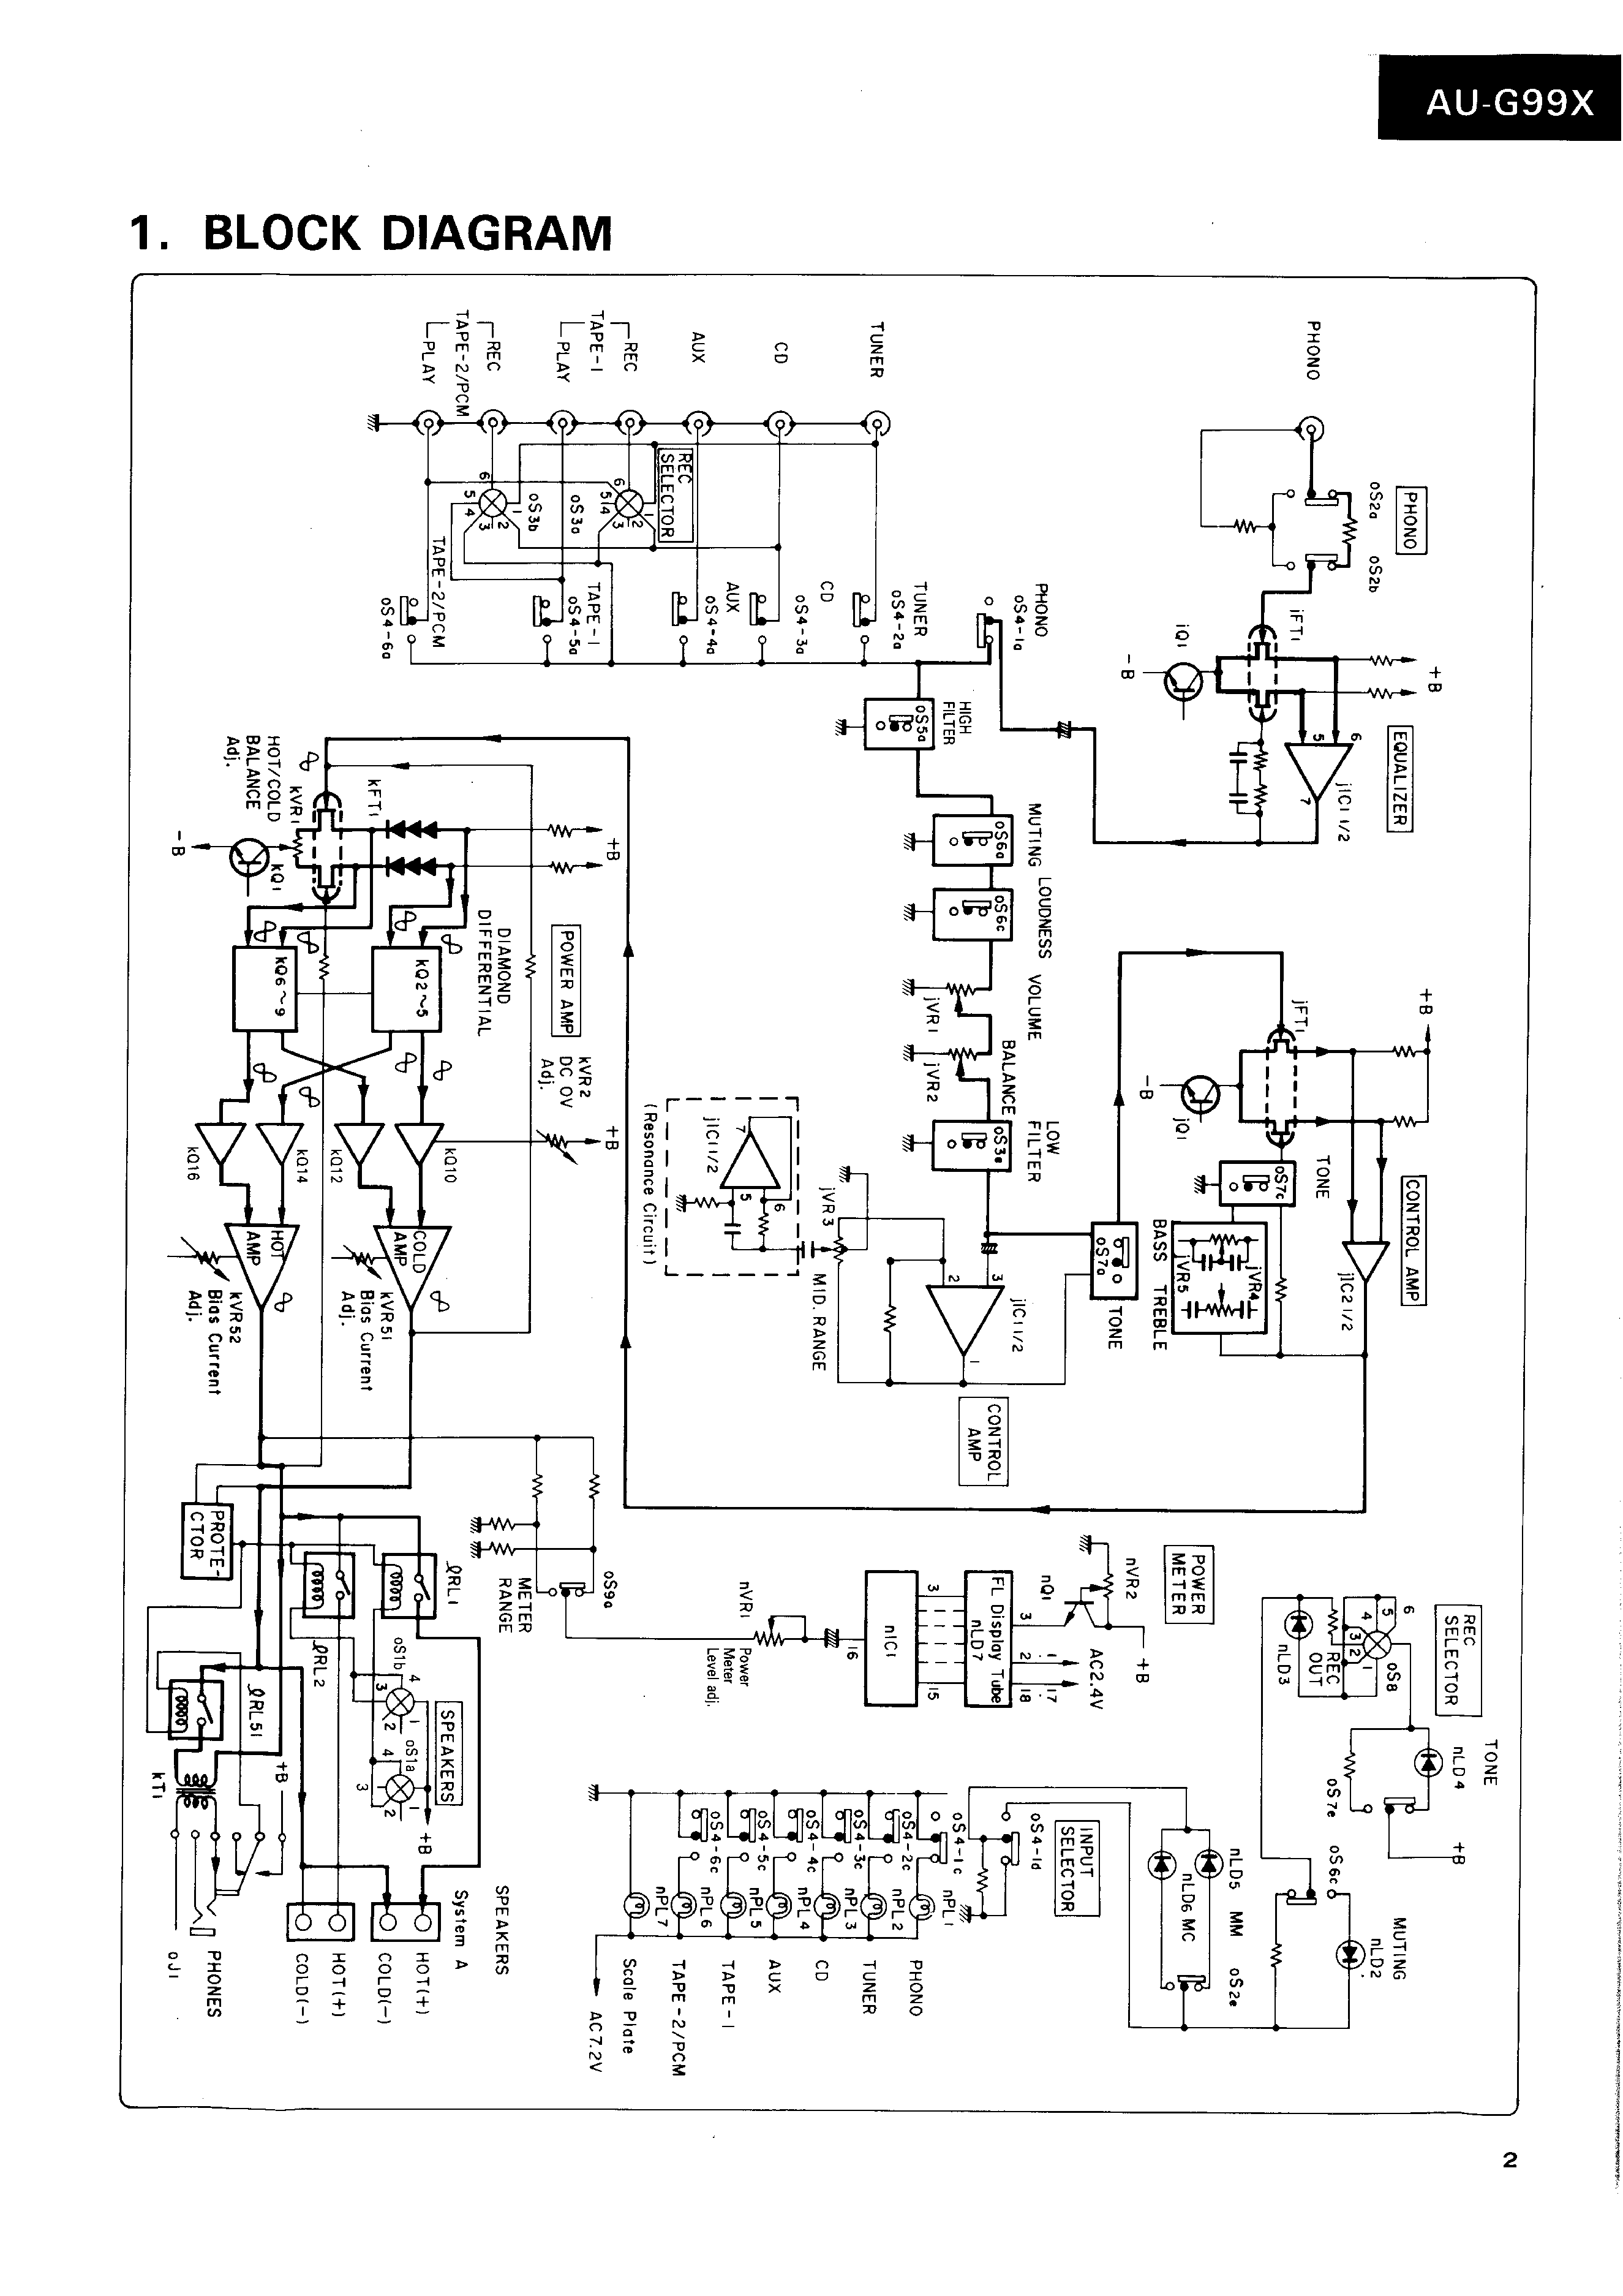 service manual for sansui au-g99x